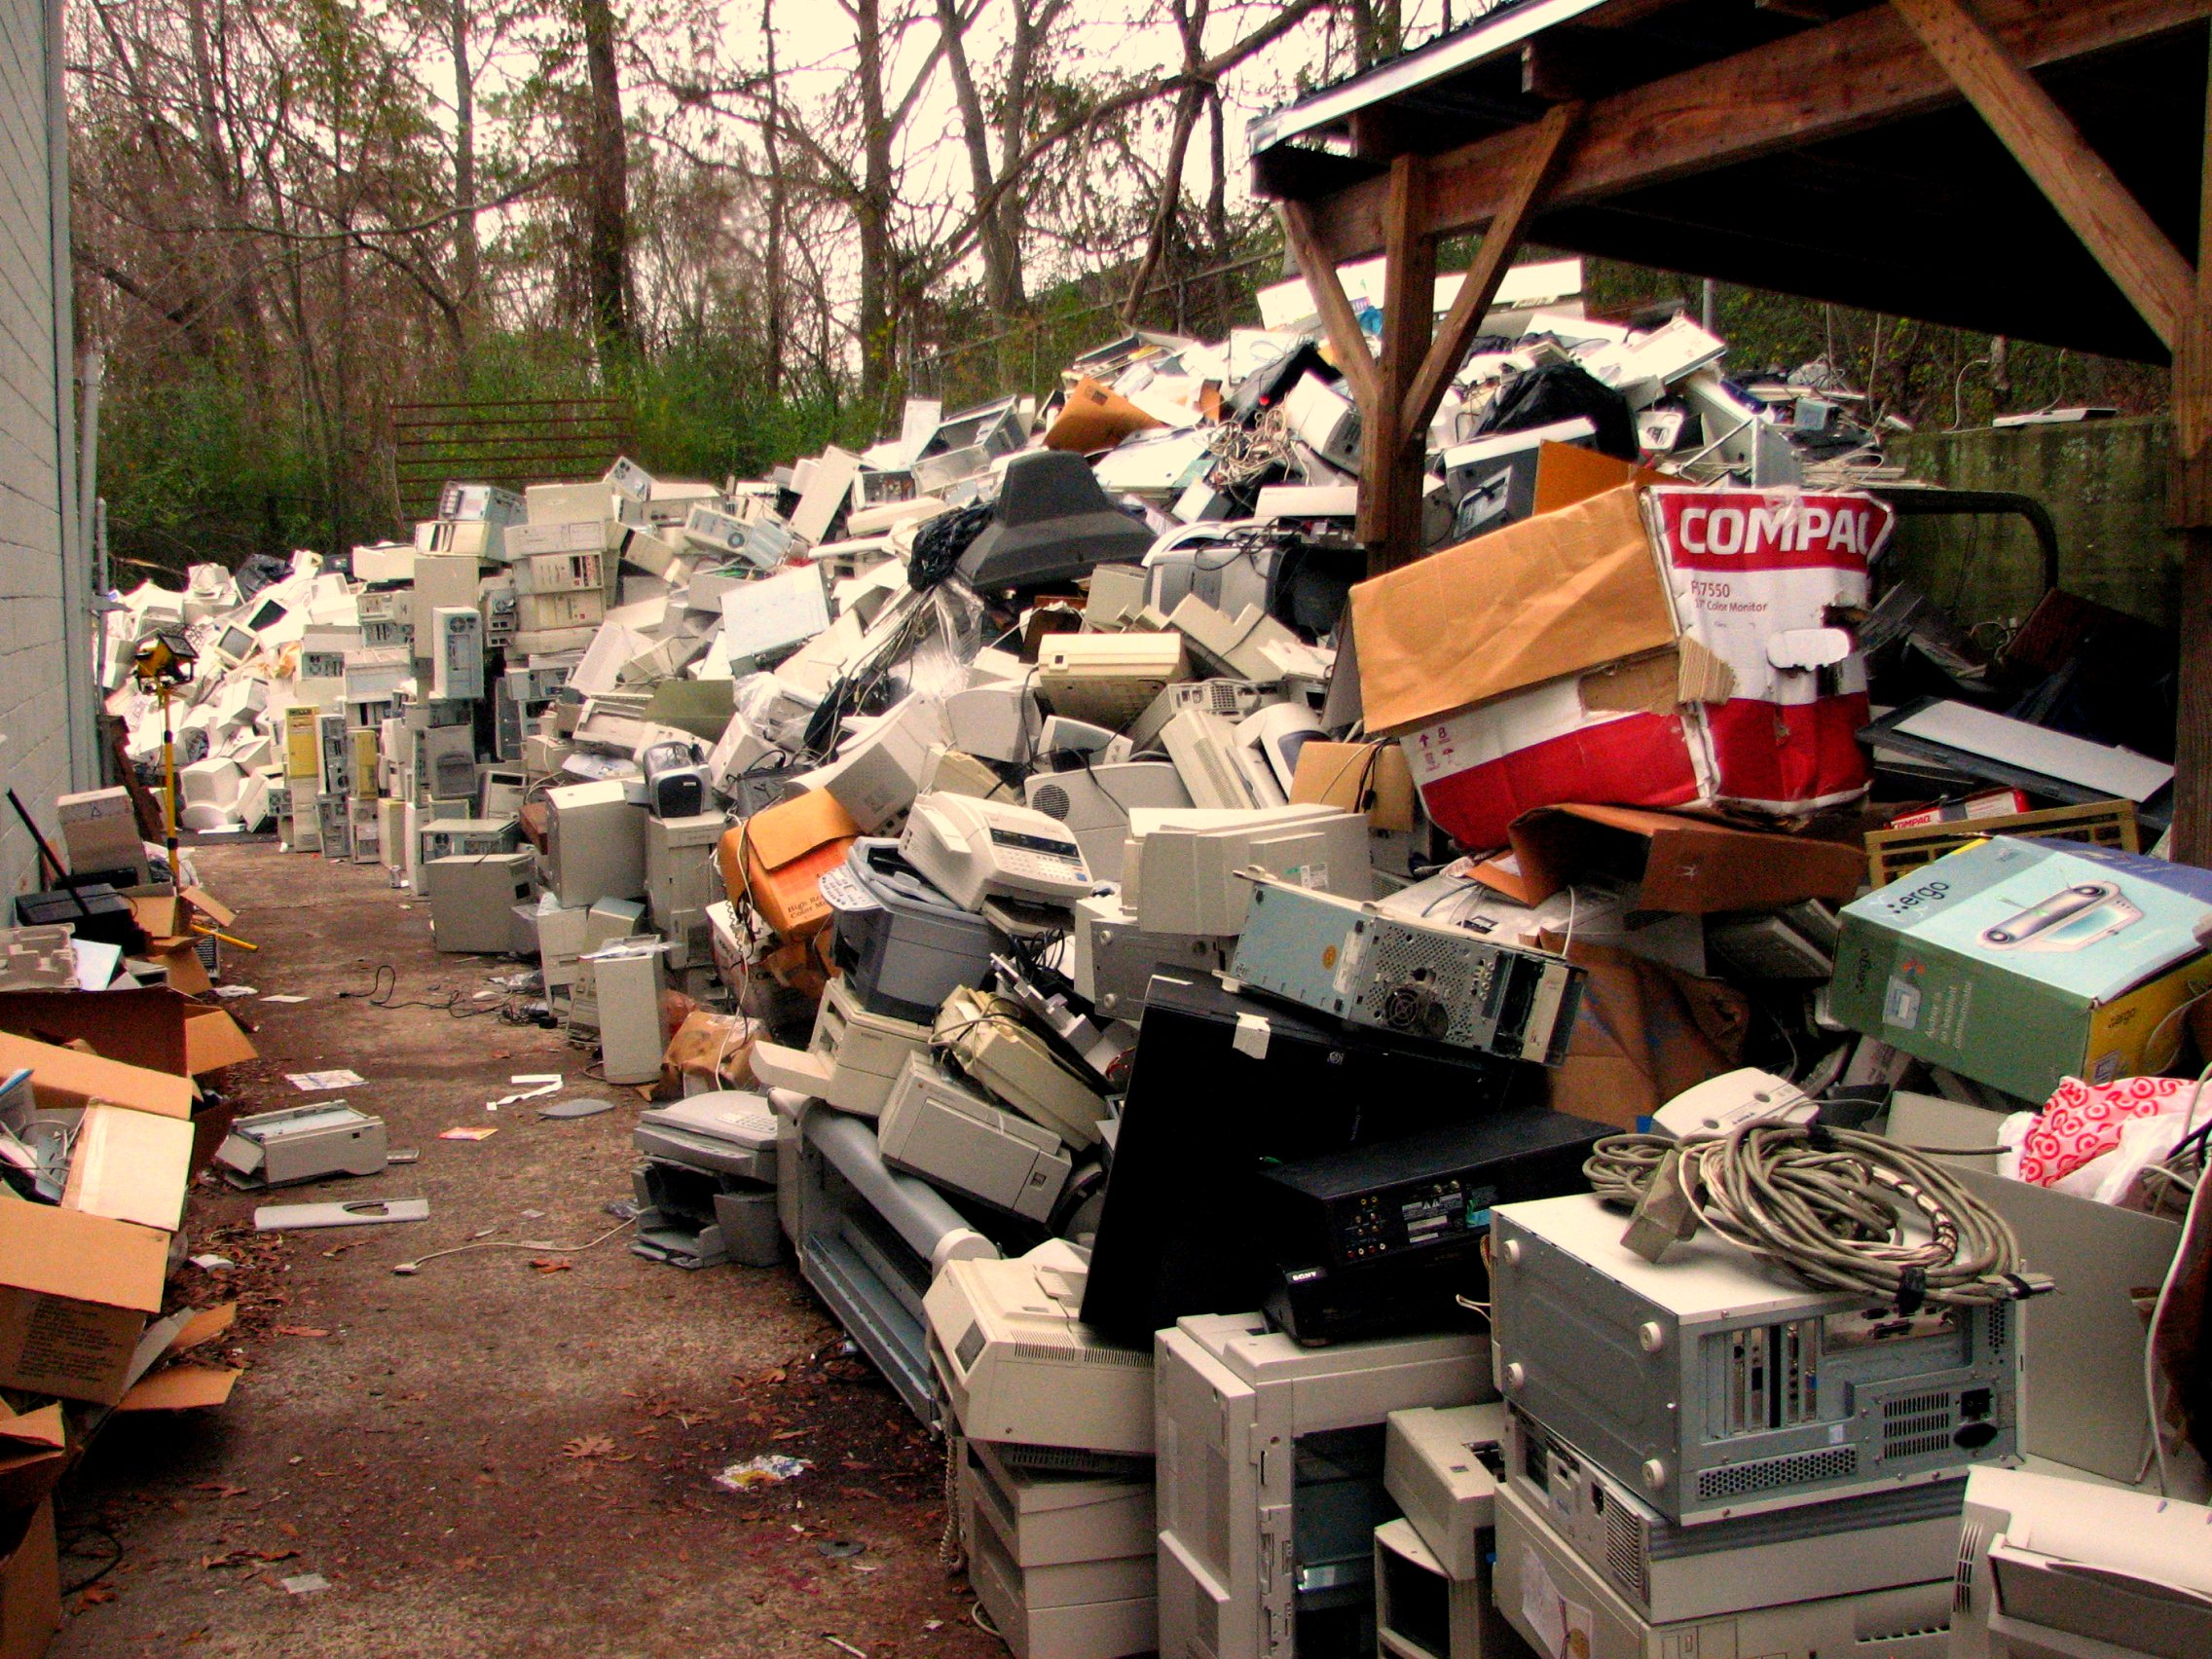 An e-Waste collection centre in South America [Photo: Curtis Palmer, Flickr]